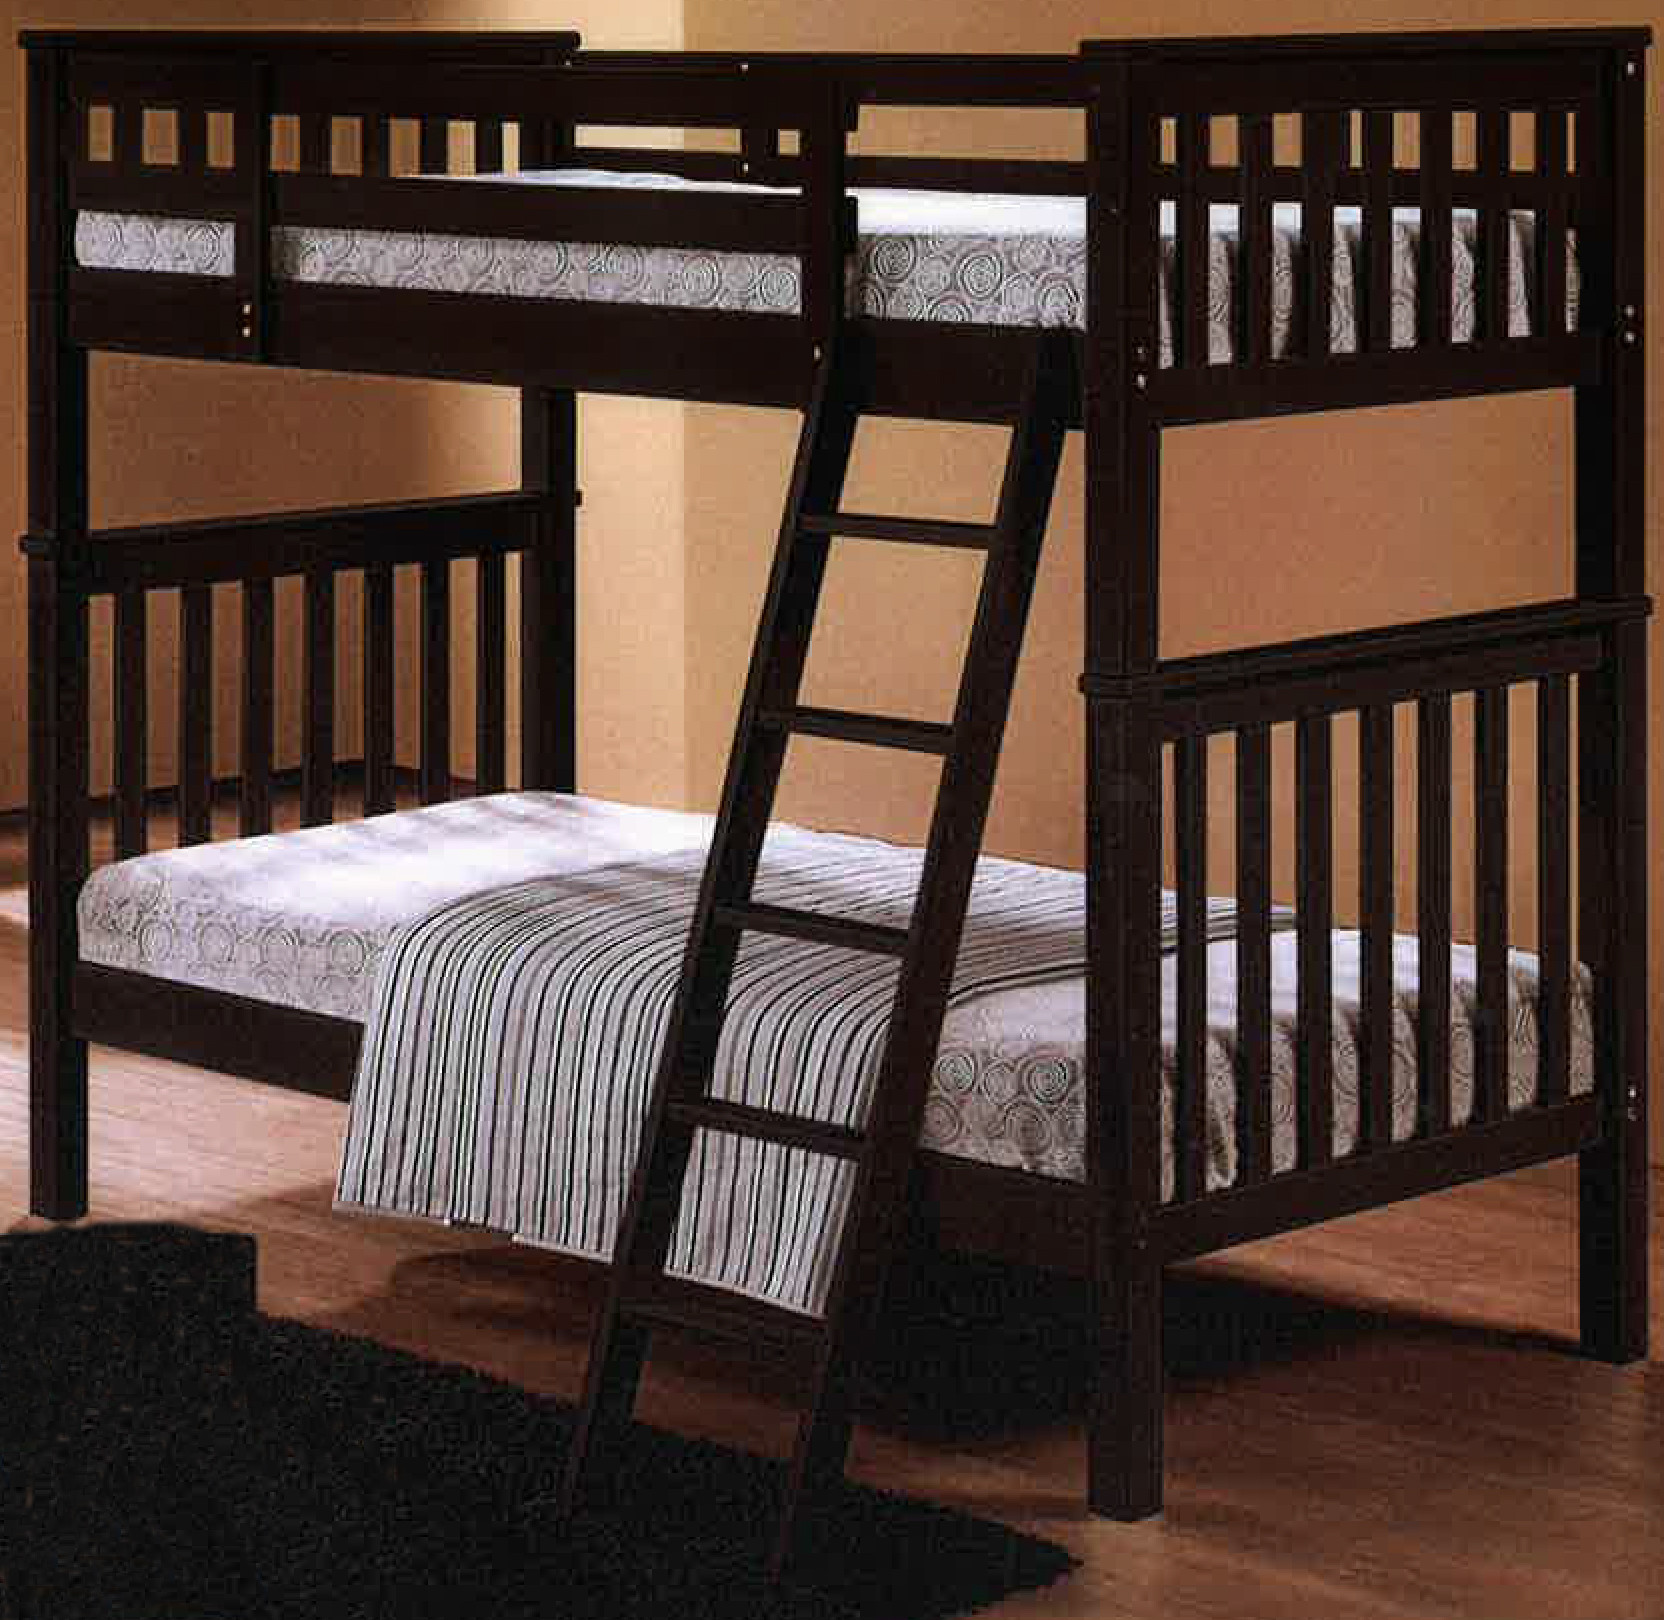 Oppland double decker bed in cappuccino furniture home d cor fortytwo - Double decker bed ...